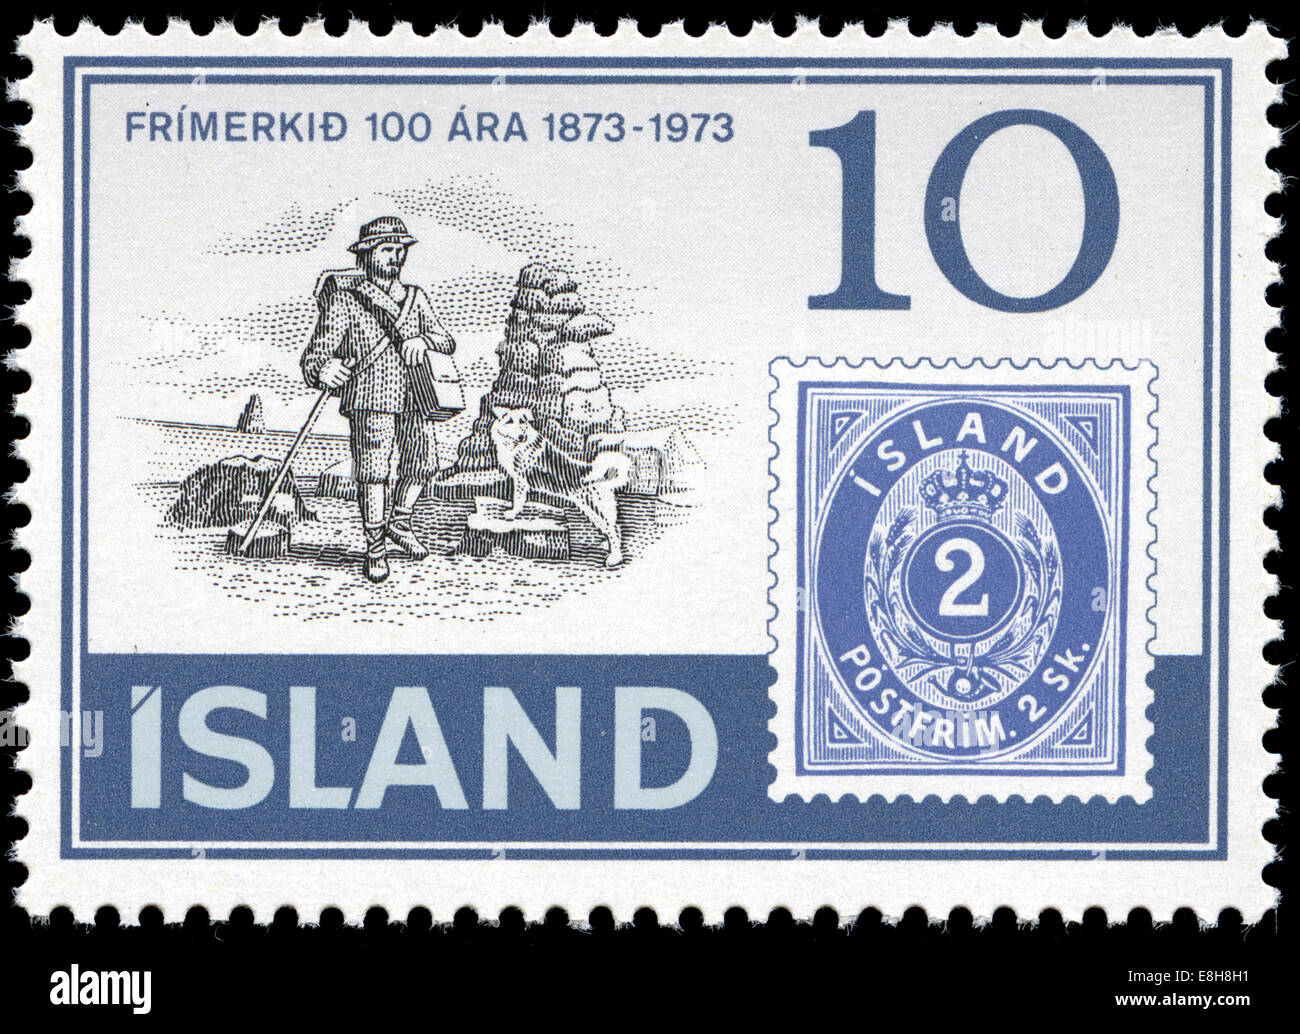 Postmarked stamp from Iceland in the  100 years Iceland stamps series issued in 1973 - Stock Image